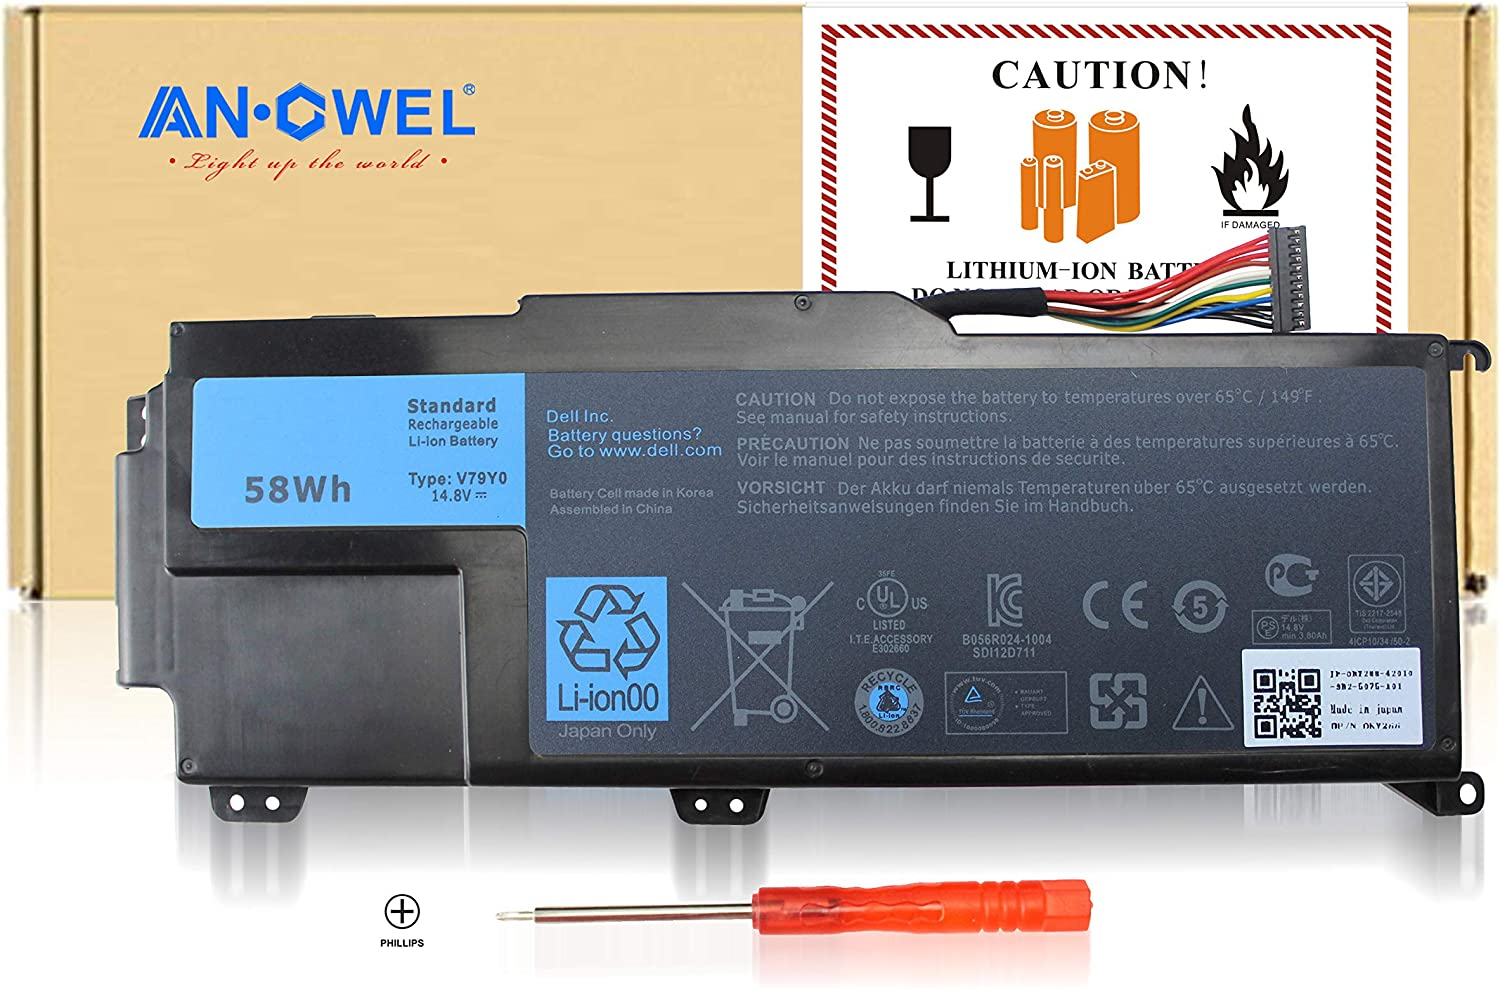 Angwel 14.8V 58WH XPS14Z Replacement Battery for Dell XPS 14z, XPS 14Z-L412x, XPS 14Z-L412z, XPS L412x, XPS L412z, Fit for V79Y0 V79YO YMYF6 0YMYF6-1 Year Warranty